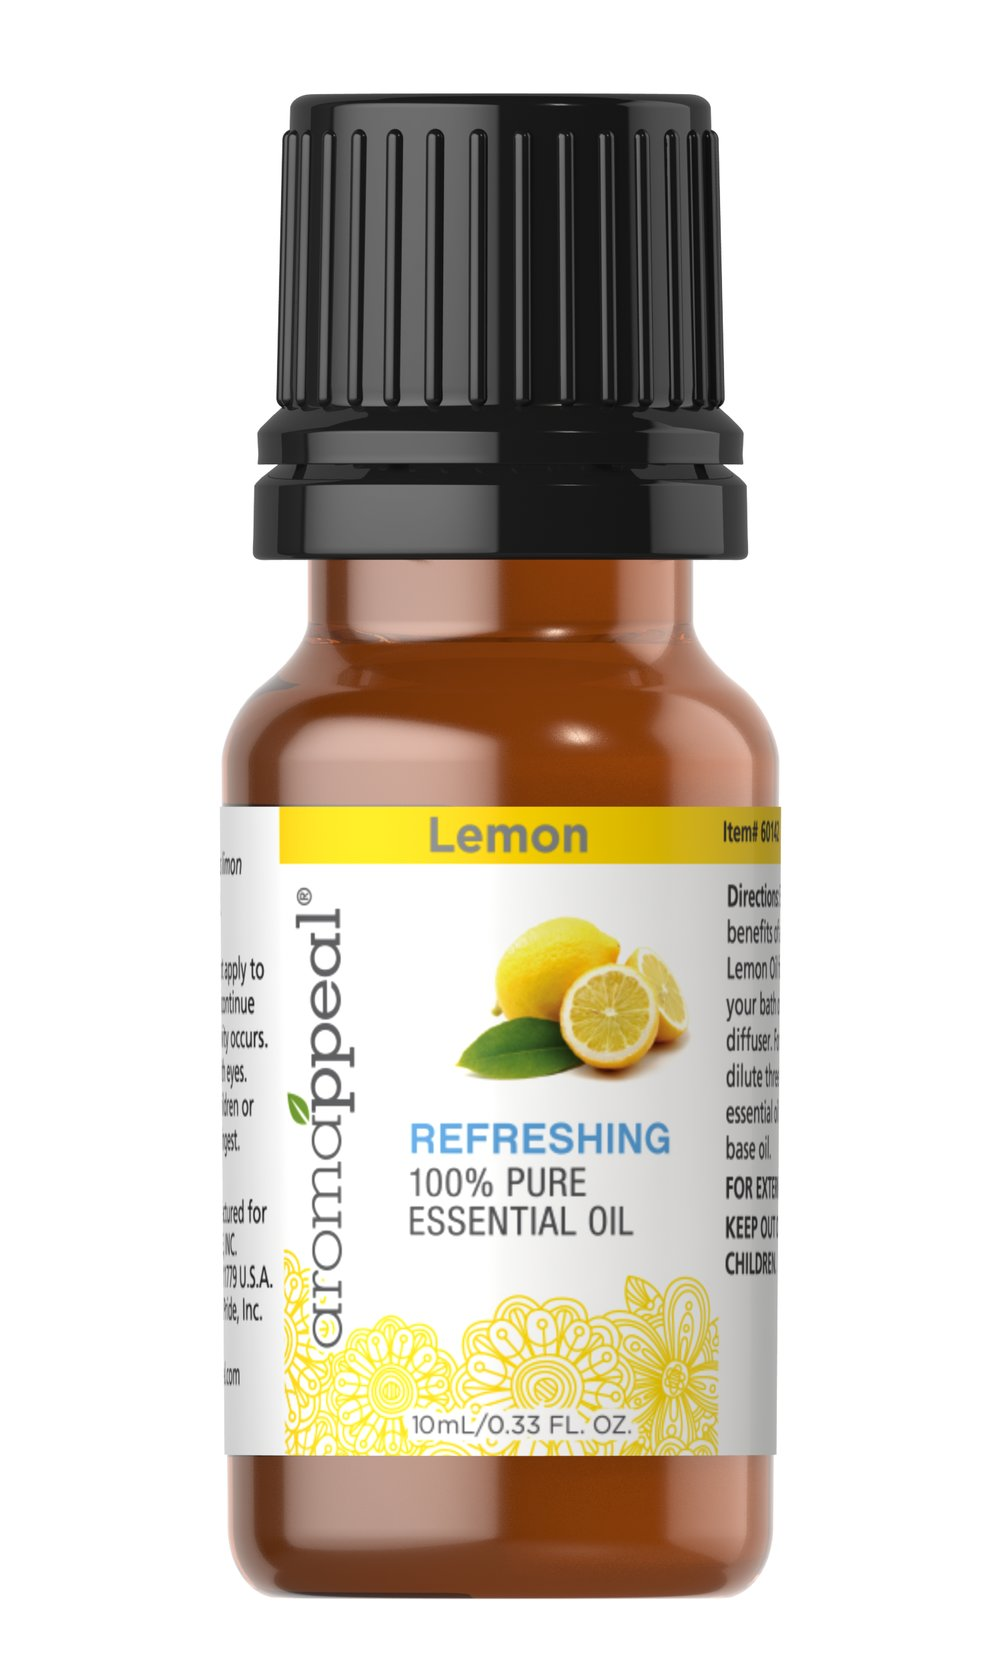 Lemon 100% Pure Essential Oil Thumbnail Alternate Bottle View